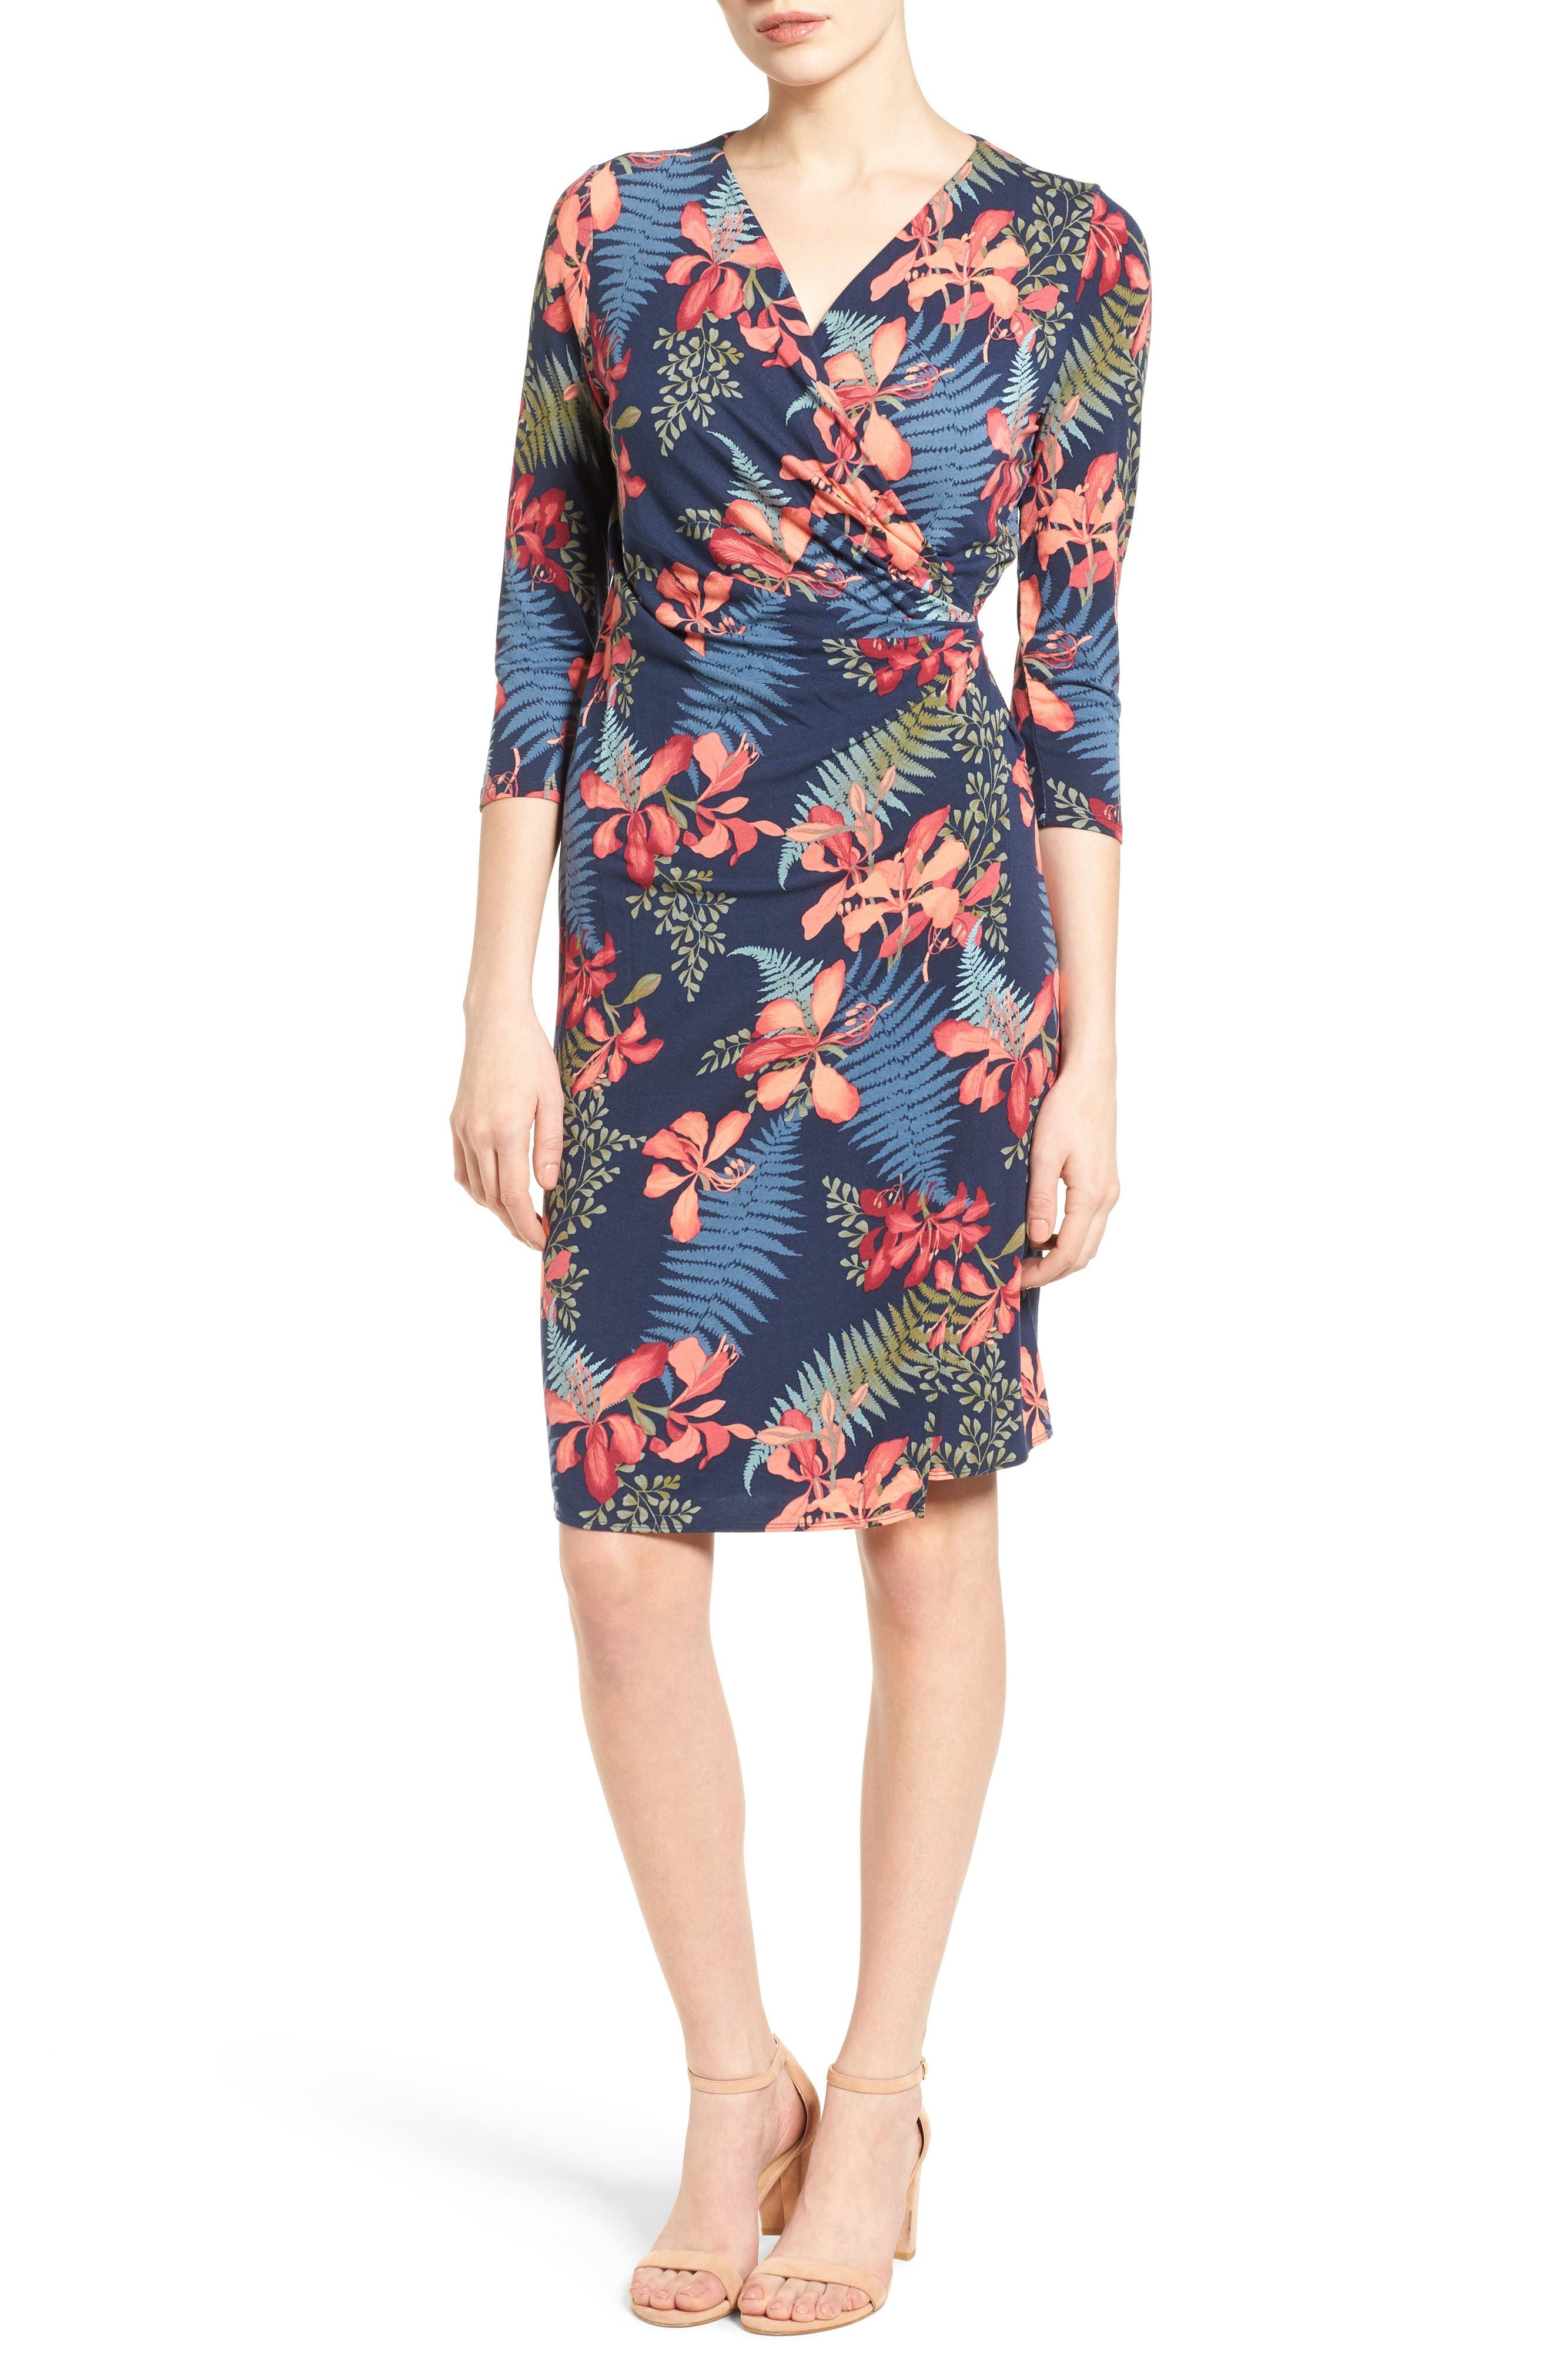 Alternate Image 1 Selected - Tommy Bahama Sacred Groves Faux Wrap Dress